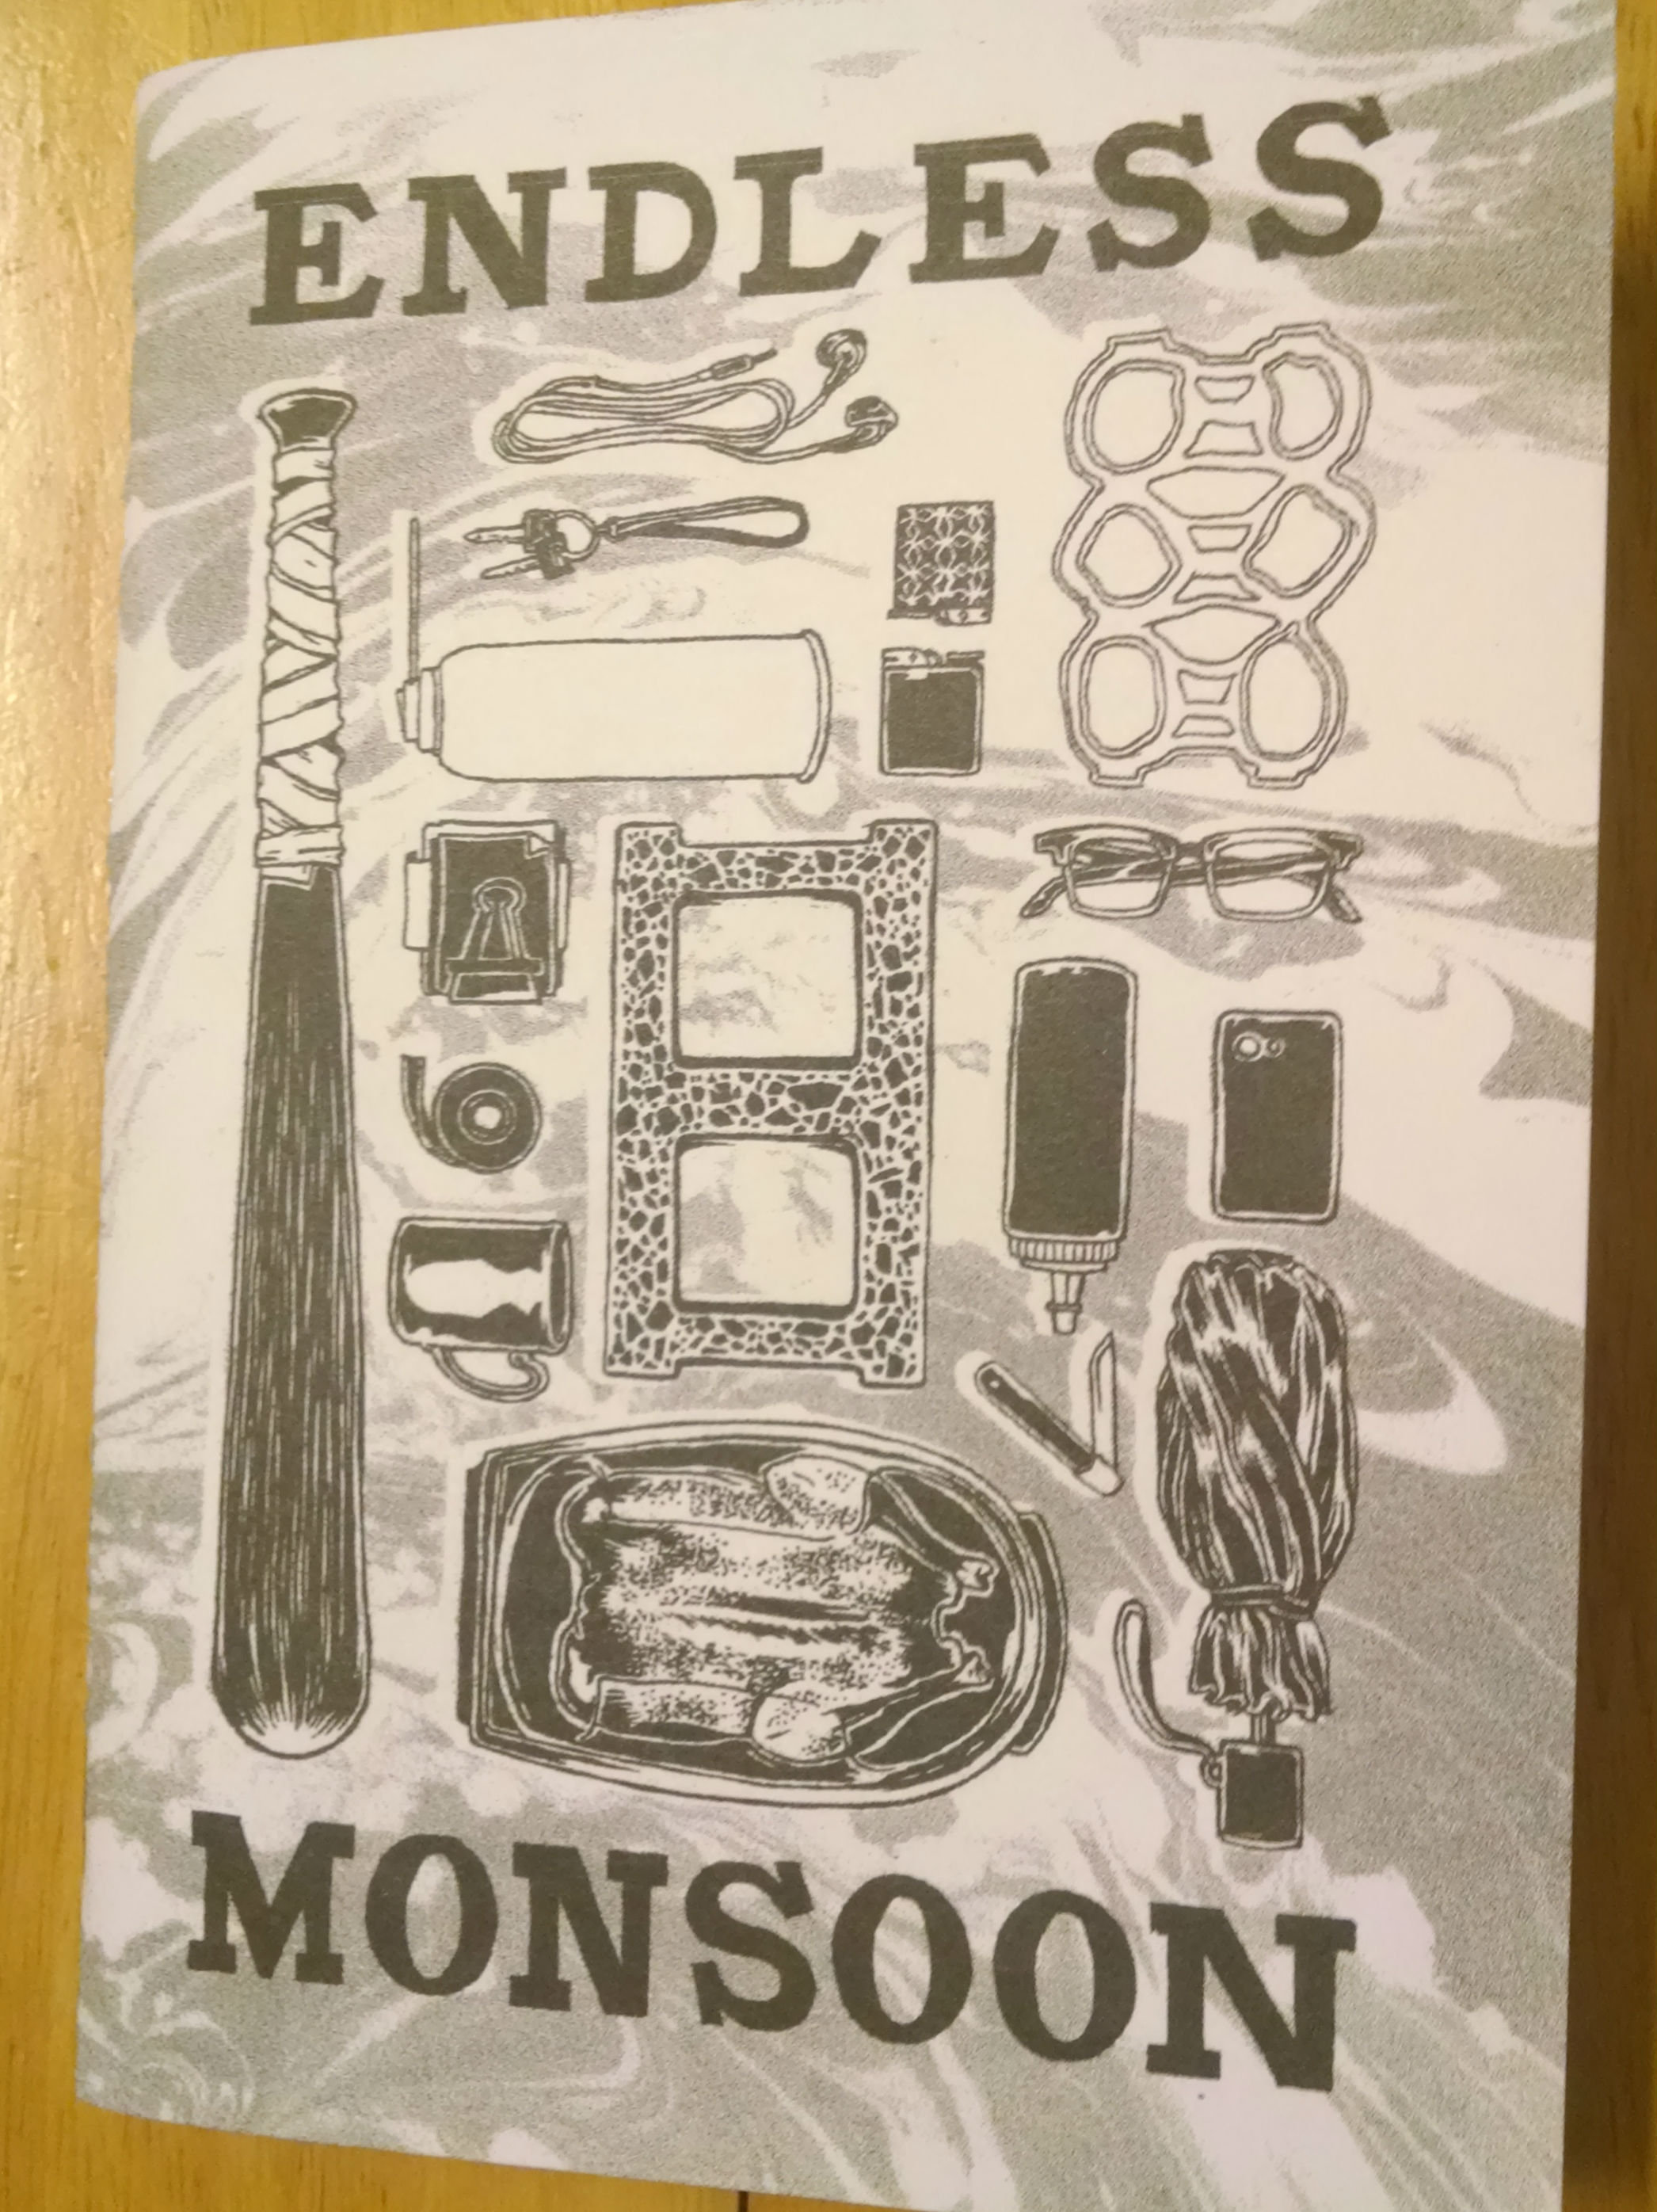 Endless Monsoon, a risograph comic by  Sarah Welch  from Houston, TX. She was on my row and, again, I was immediately drawn to it and wanted to buy every issue.